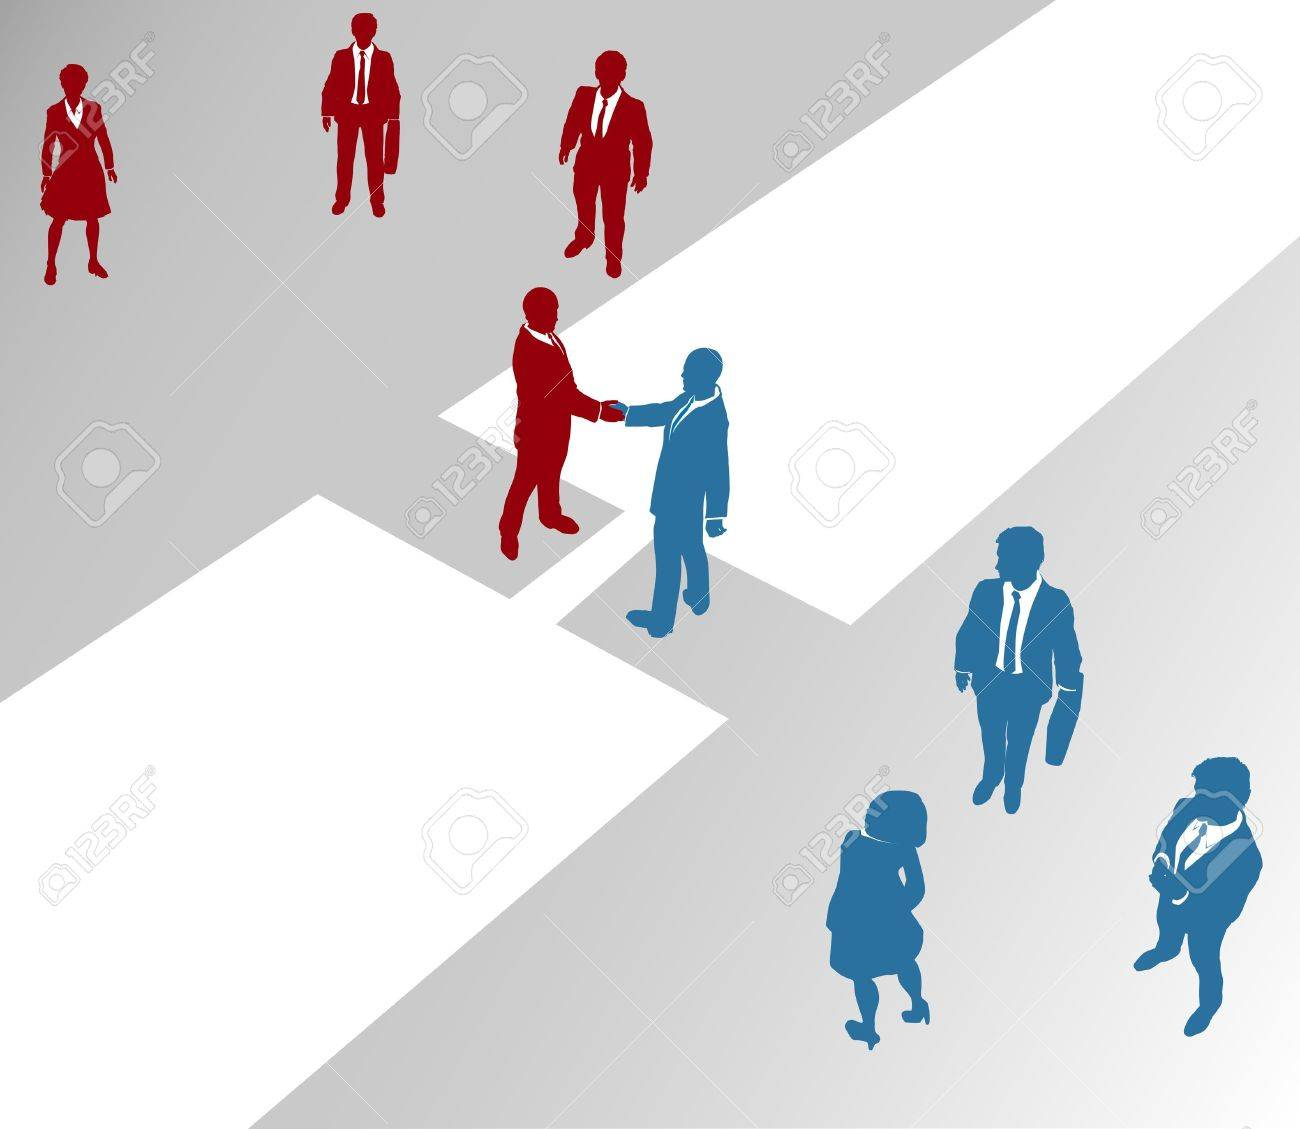 Two company teams join in a handshake connection over a gap Stock Vector - 13734933